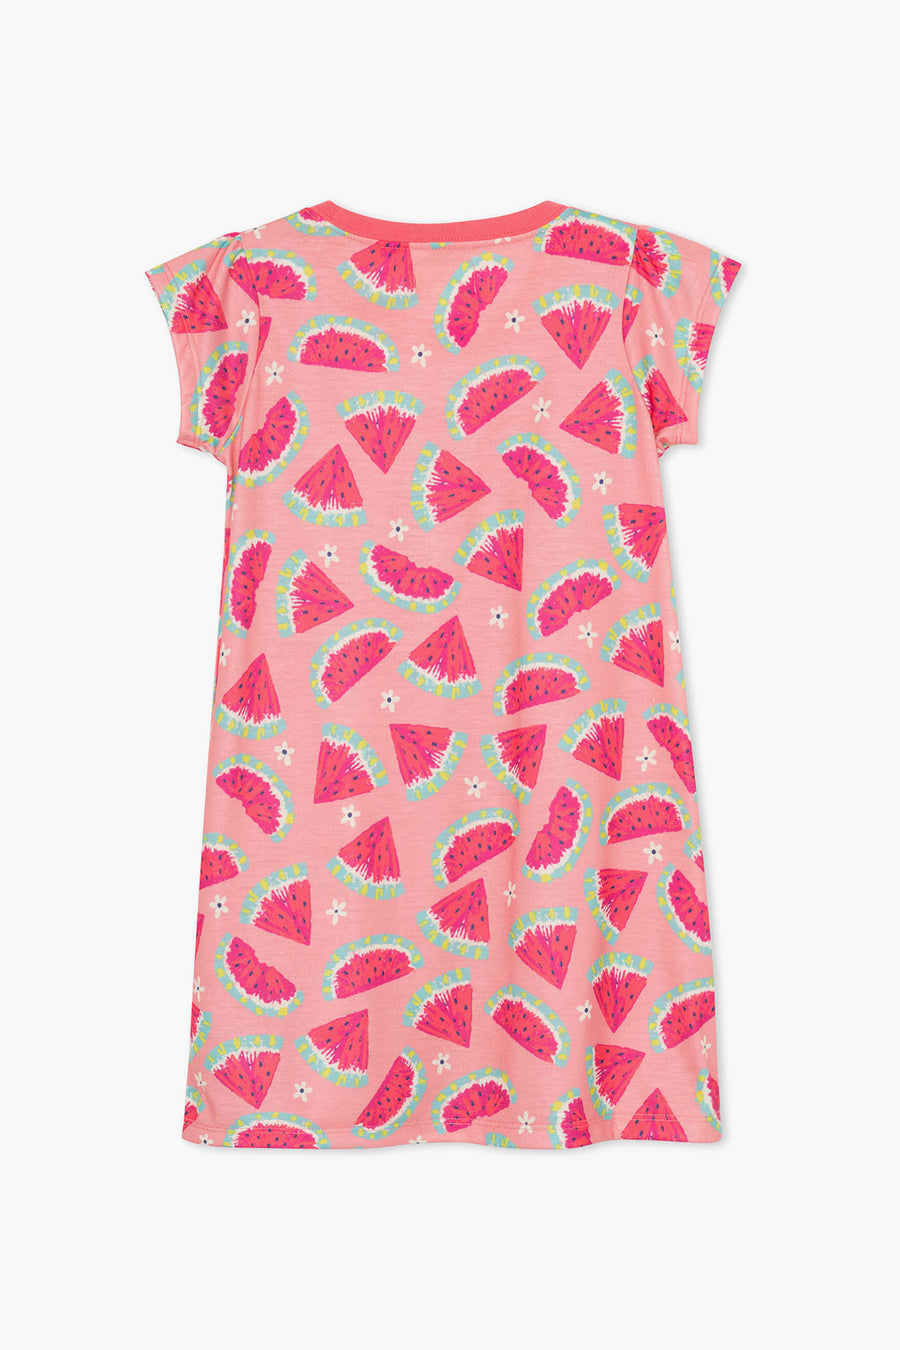 Hatley Watermelon Slices Girls Nightgown